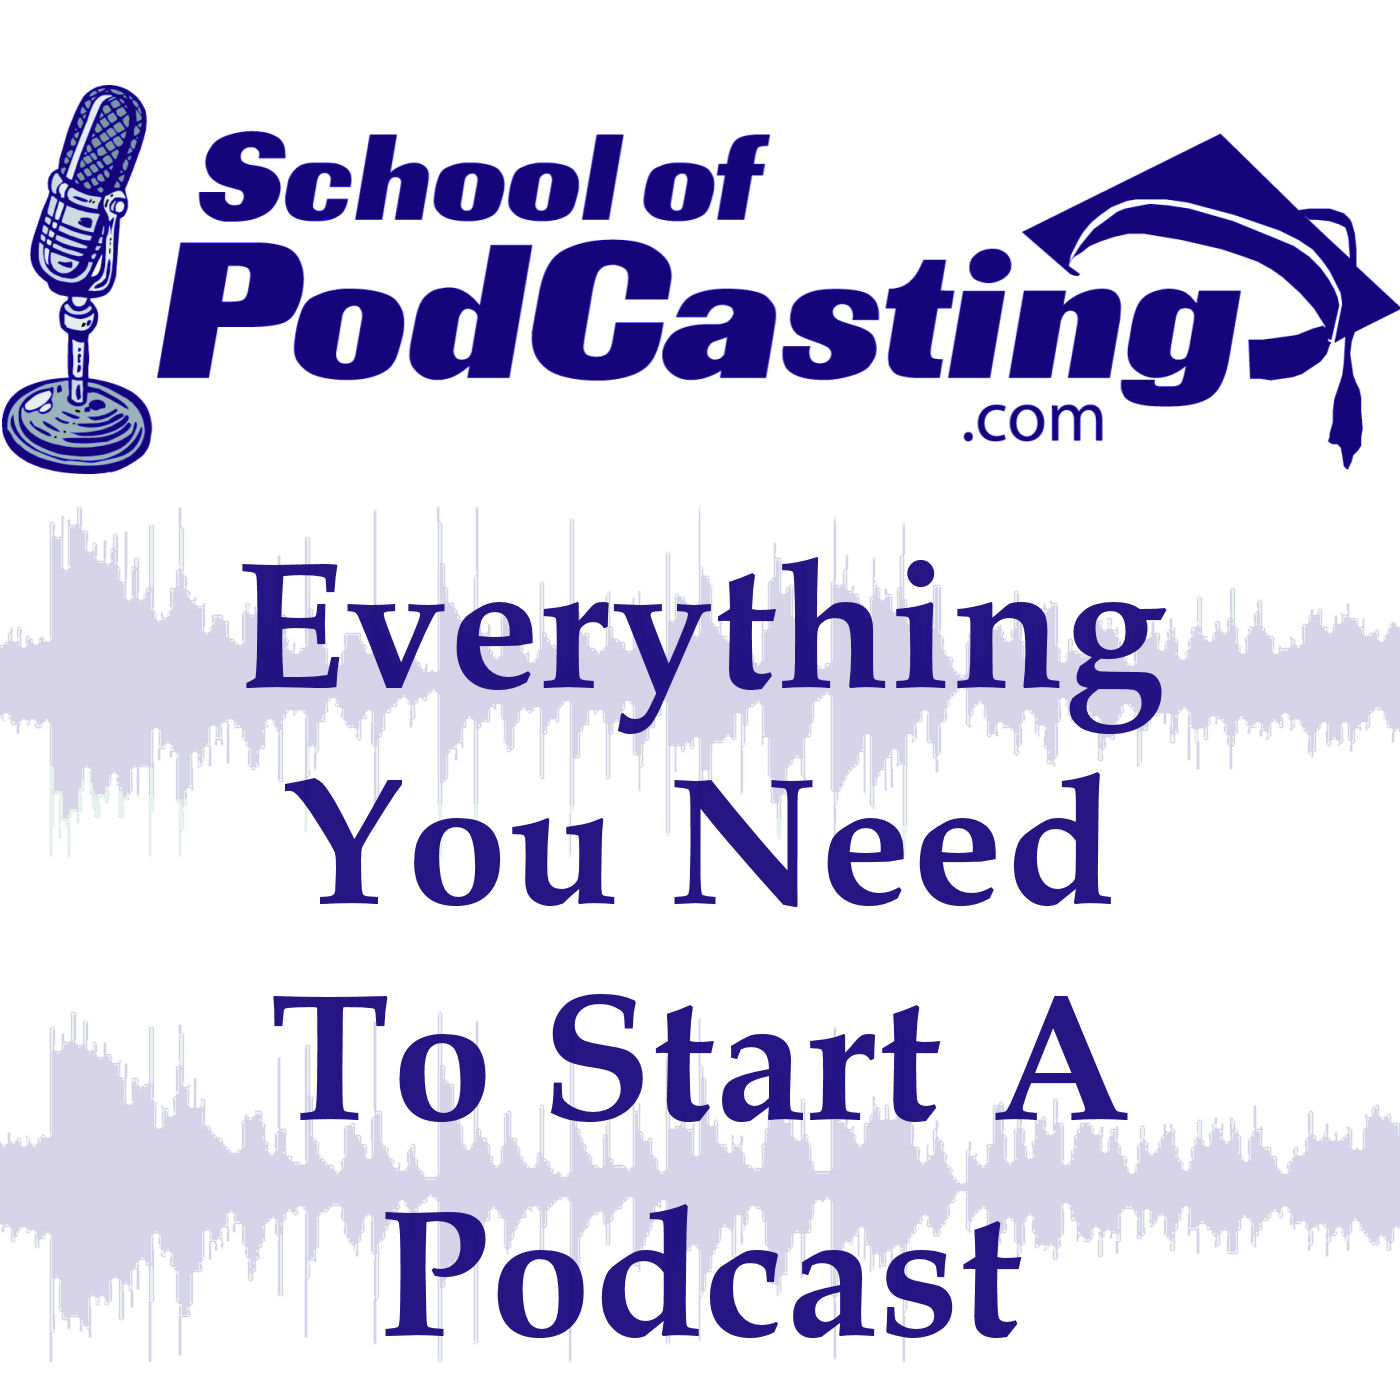 The School of Podcasting cover art image